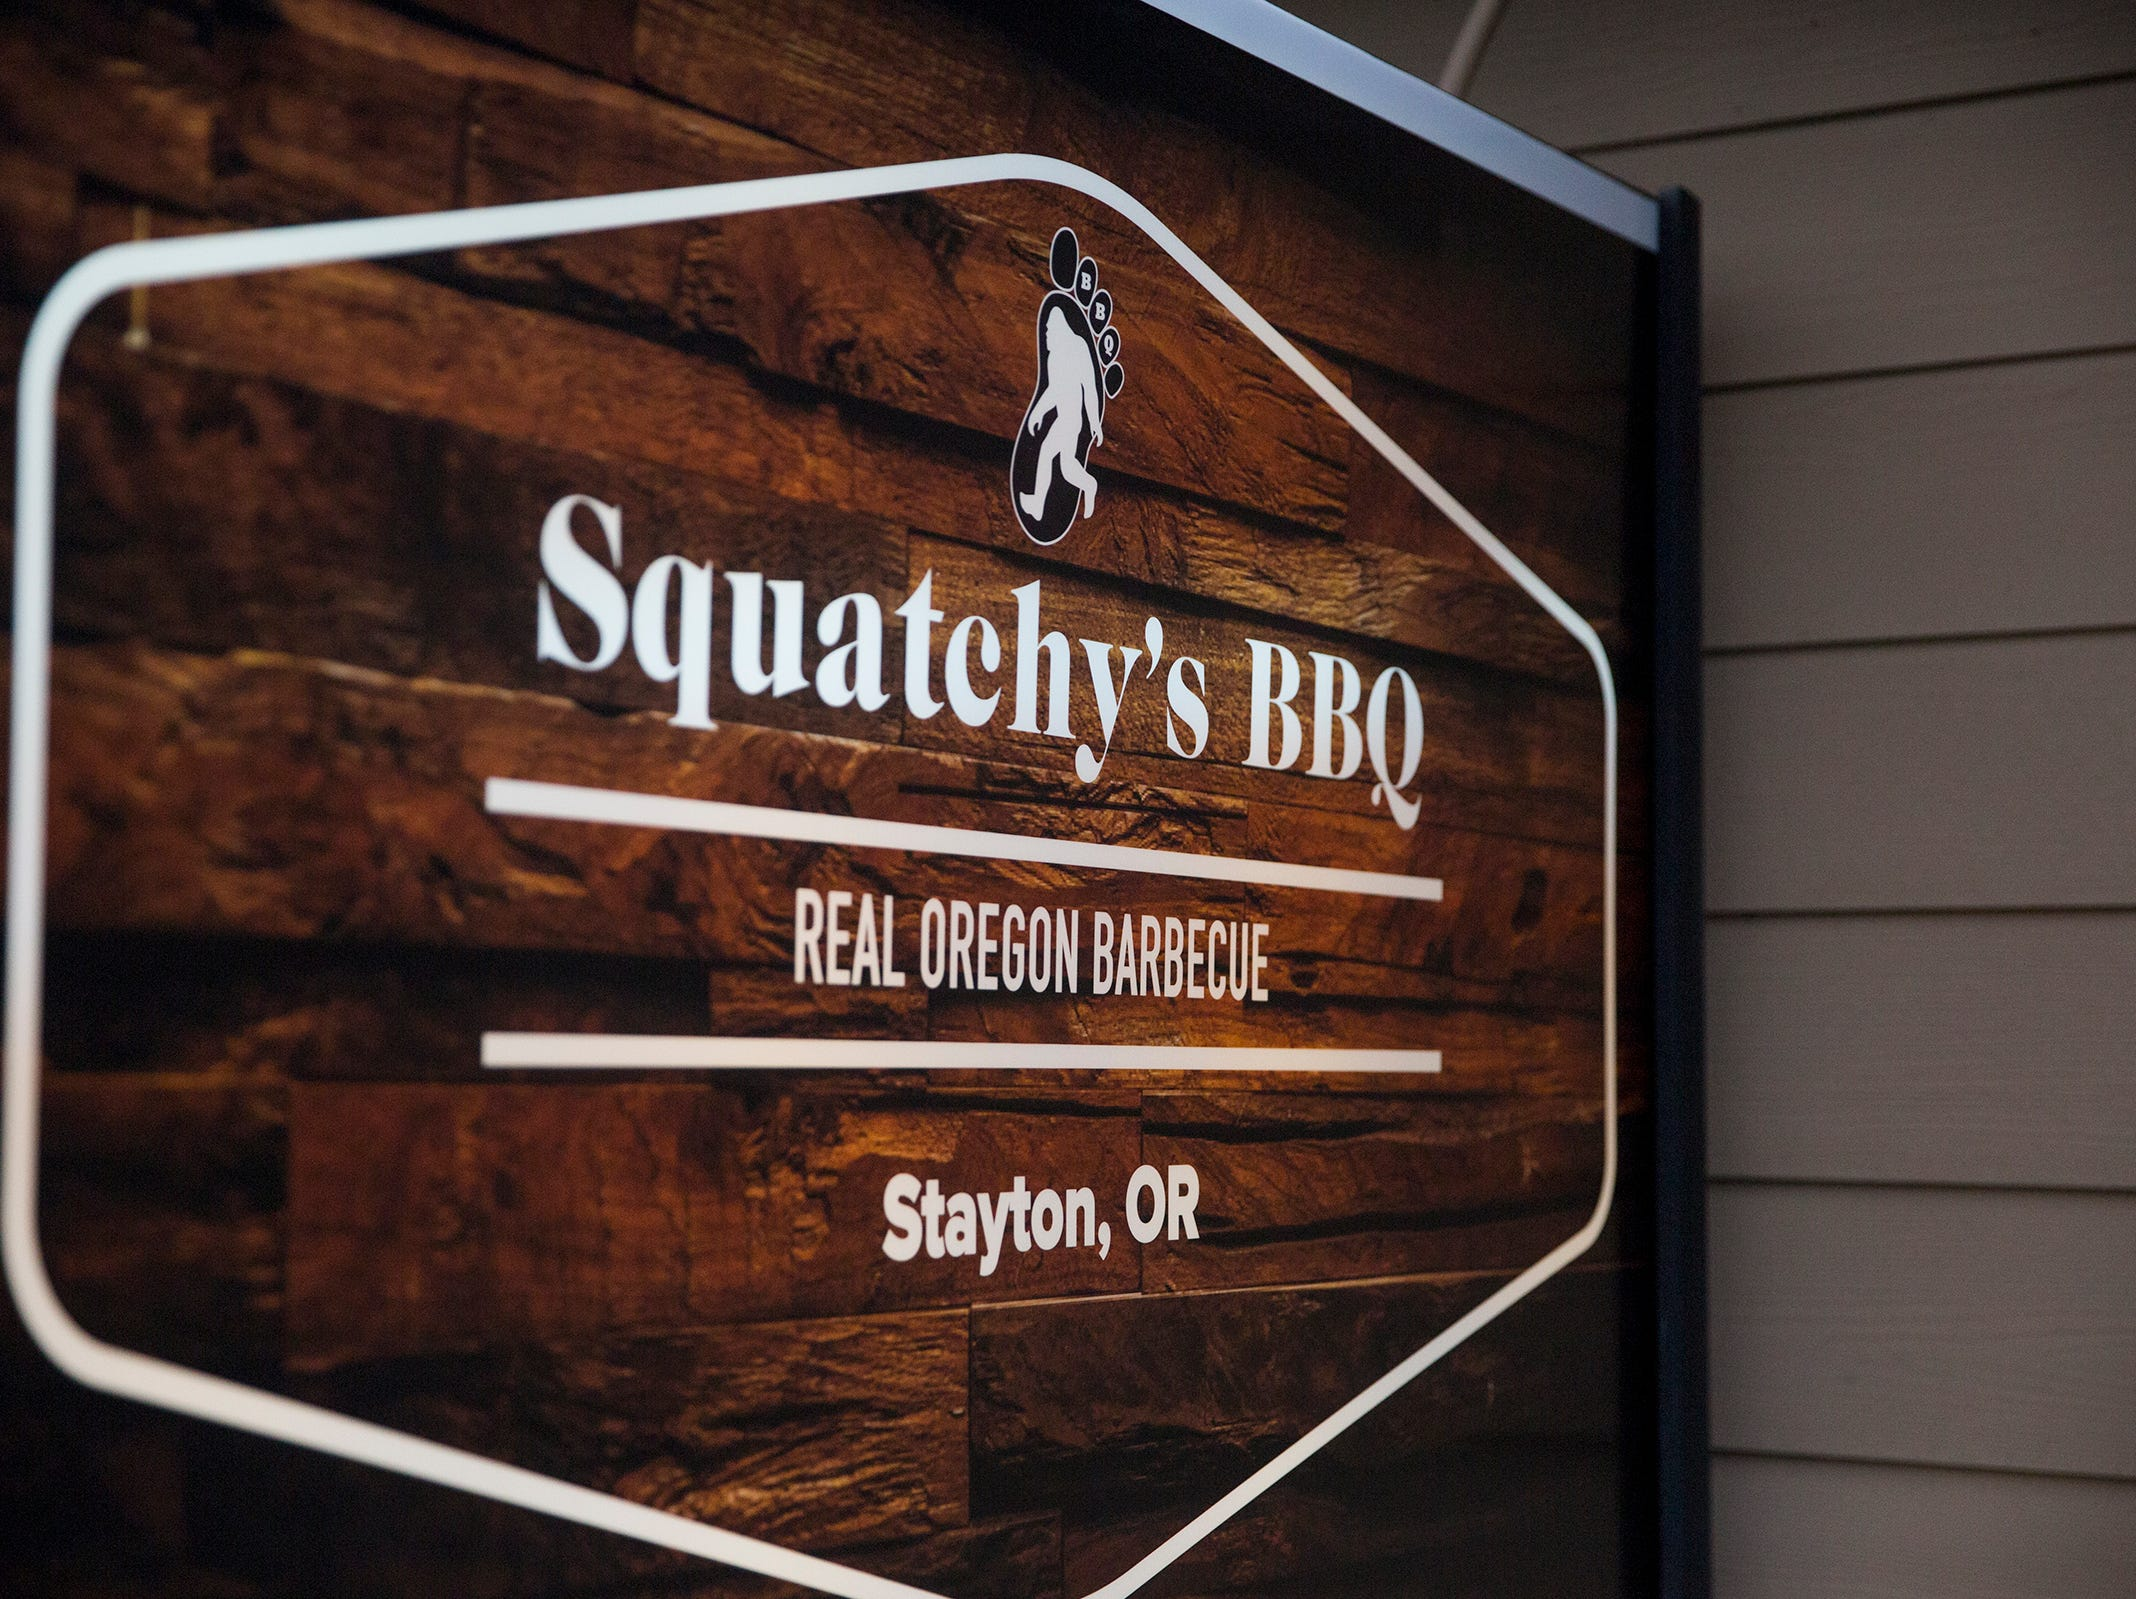 Squatchy's BBQ in Stayton on Saturday, Dec. 22, 2018. The restaurant opened in September after the family's food cart burned down earlier this year.